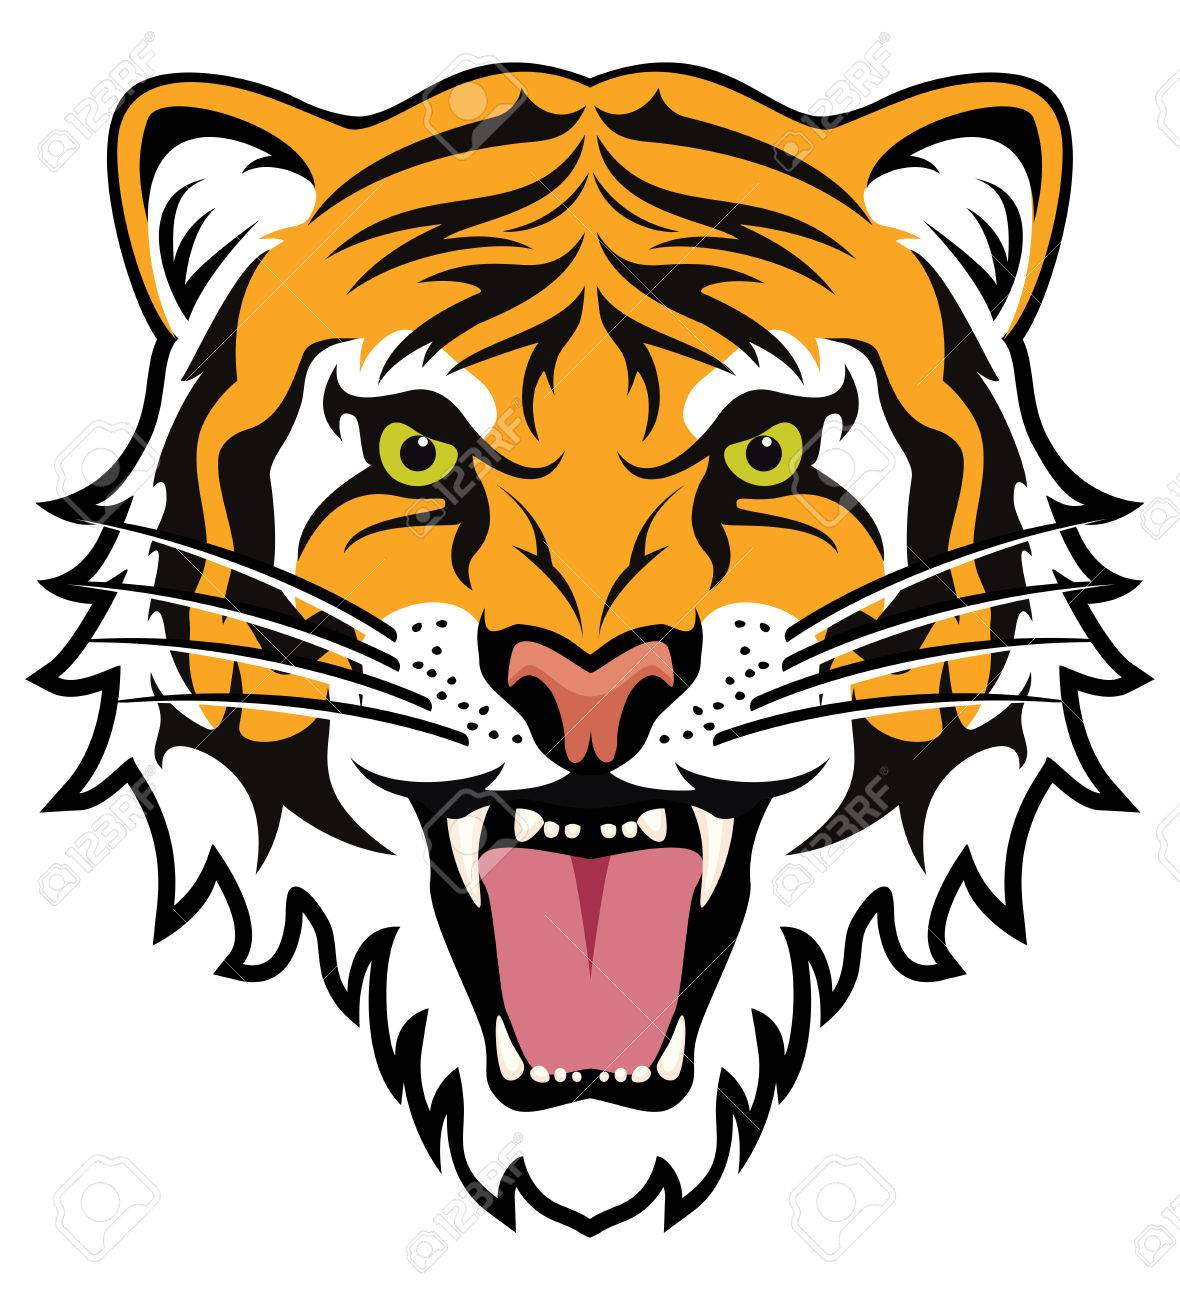 stylized face of angry tiger - 54121928